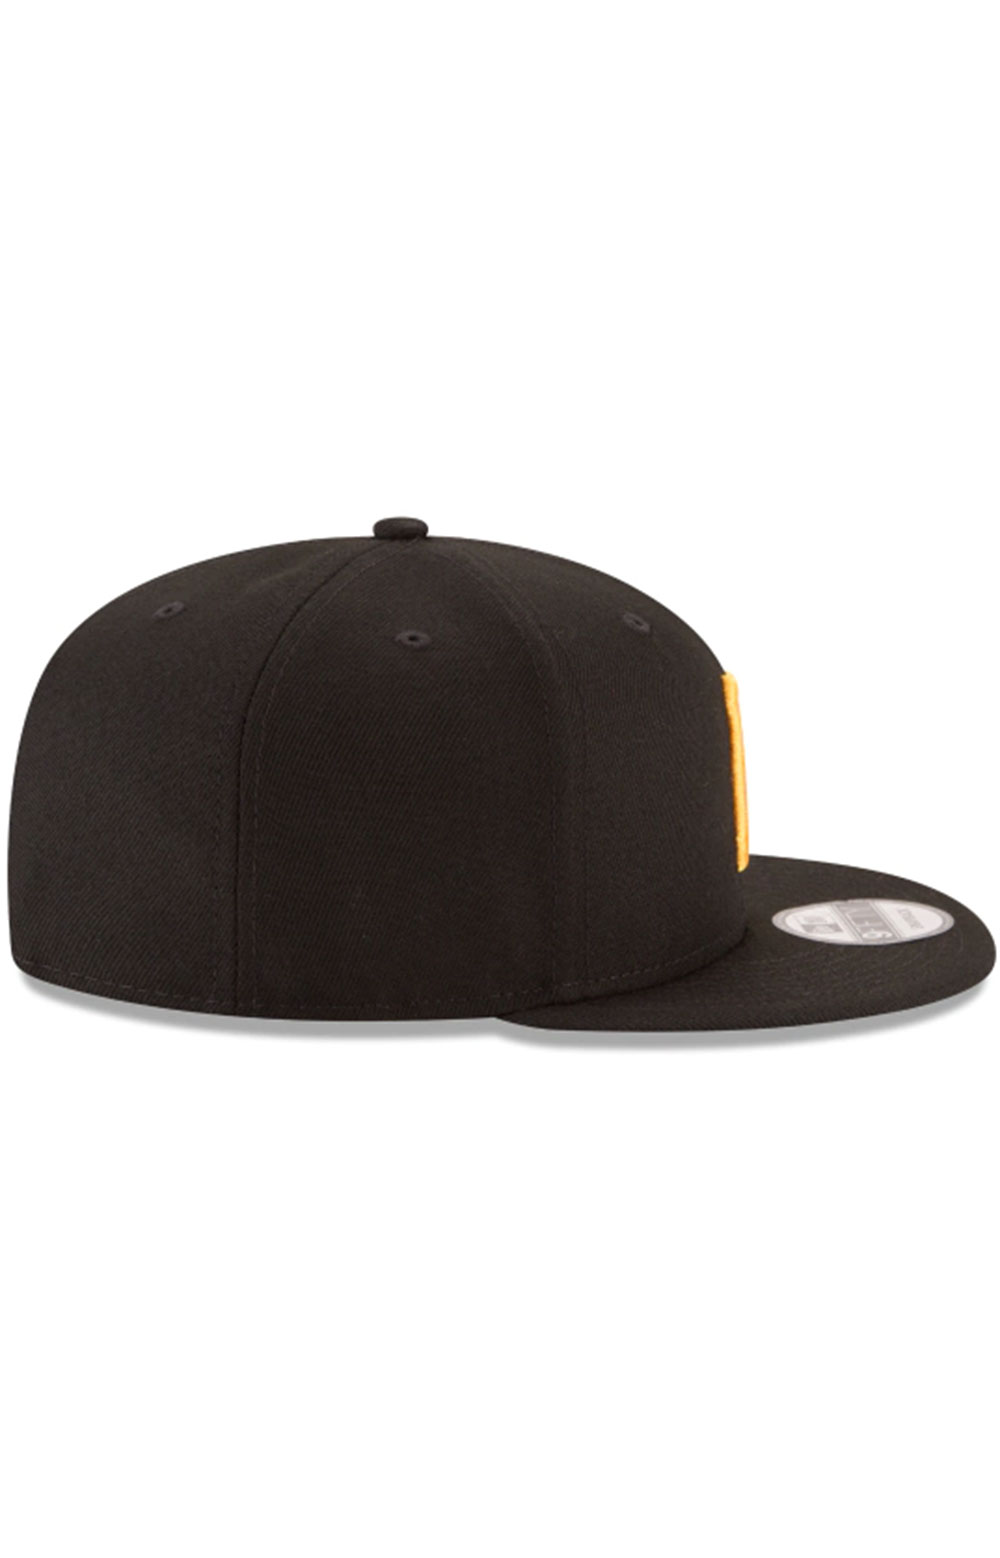 Pittsburgh Pirates Team Color Basic 9Fifty Snap-Back Hat  3